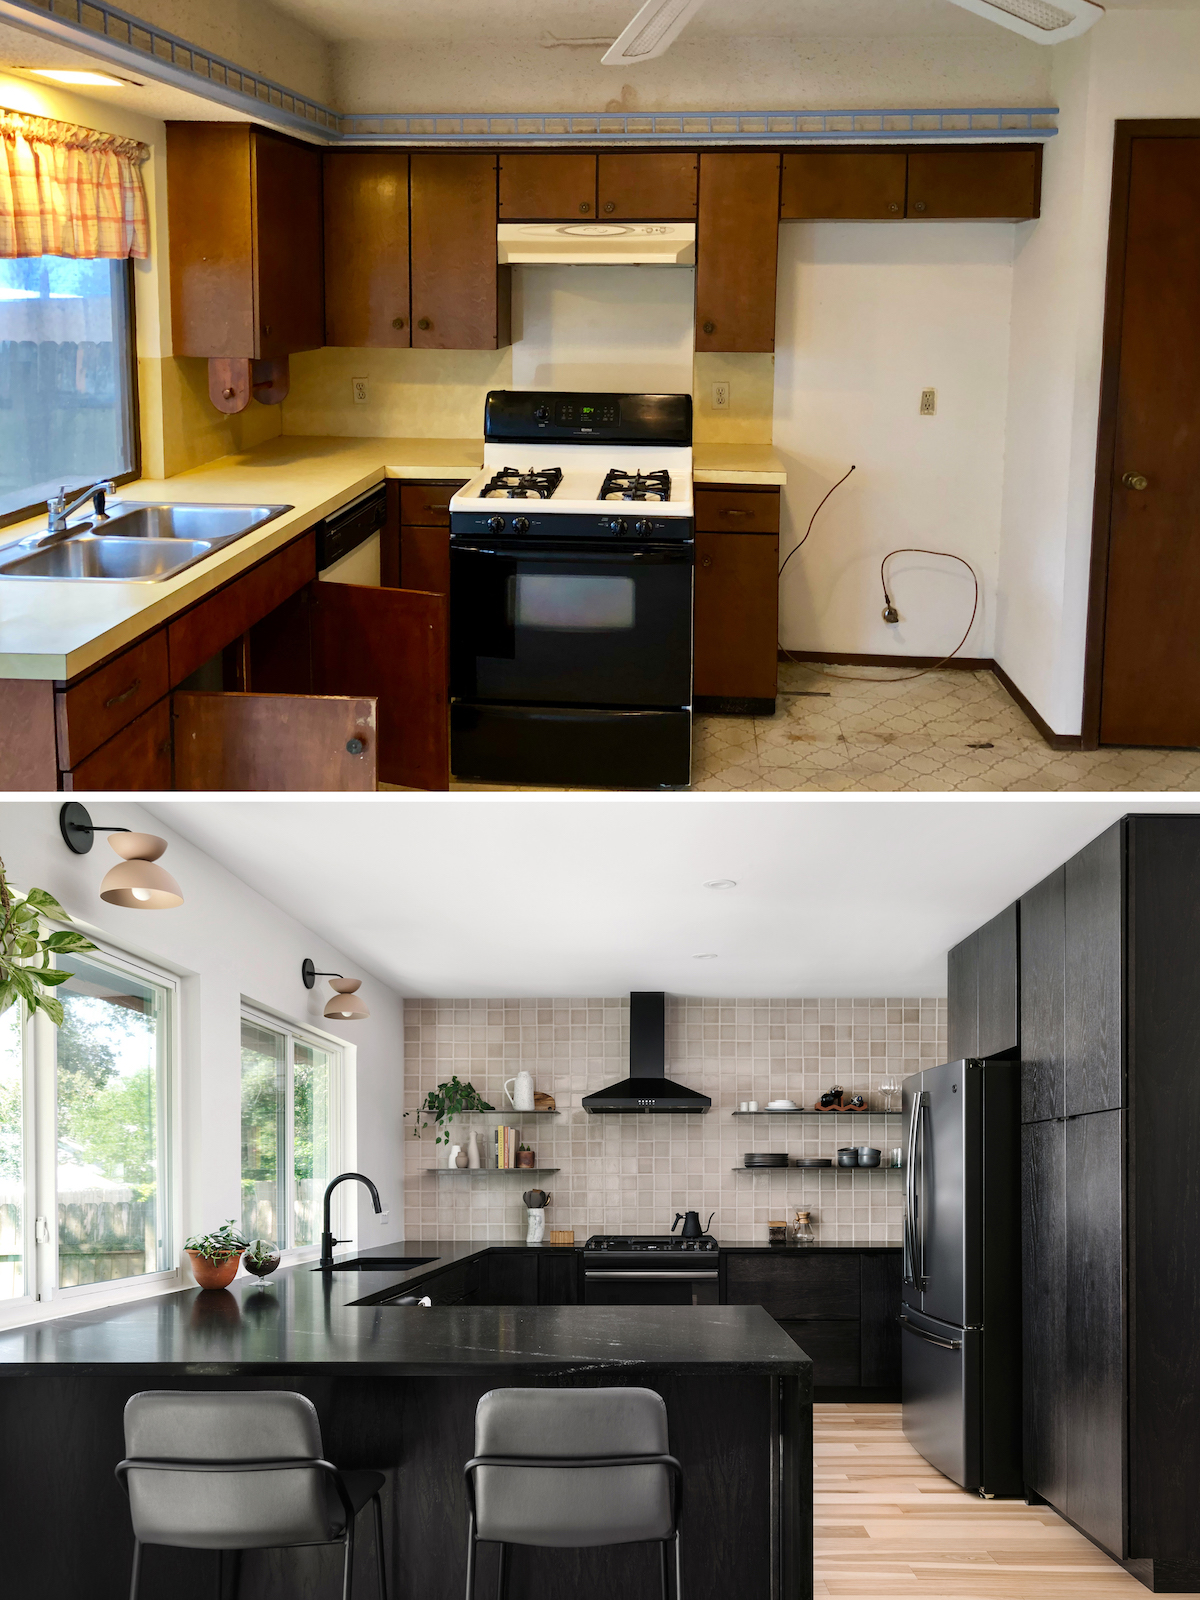 1970s Kitchen Remodel Before and Afters > The Effortless Chic on Modern:gijub4Bif1S= Kitchen Remodel  id=17691